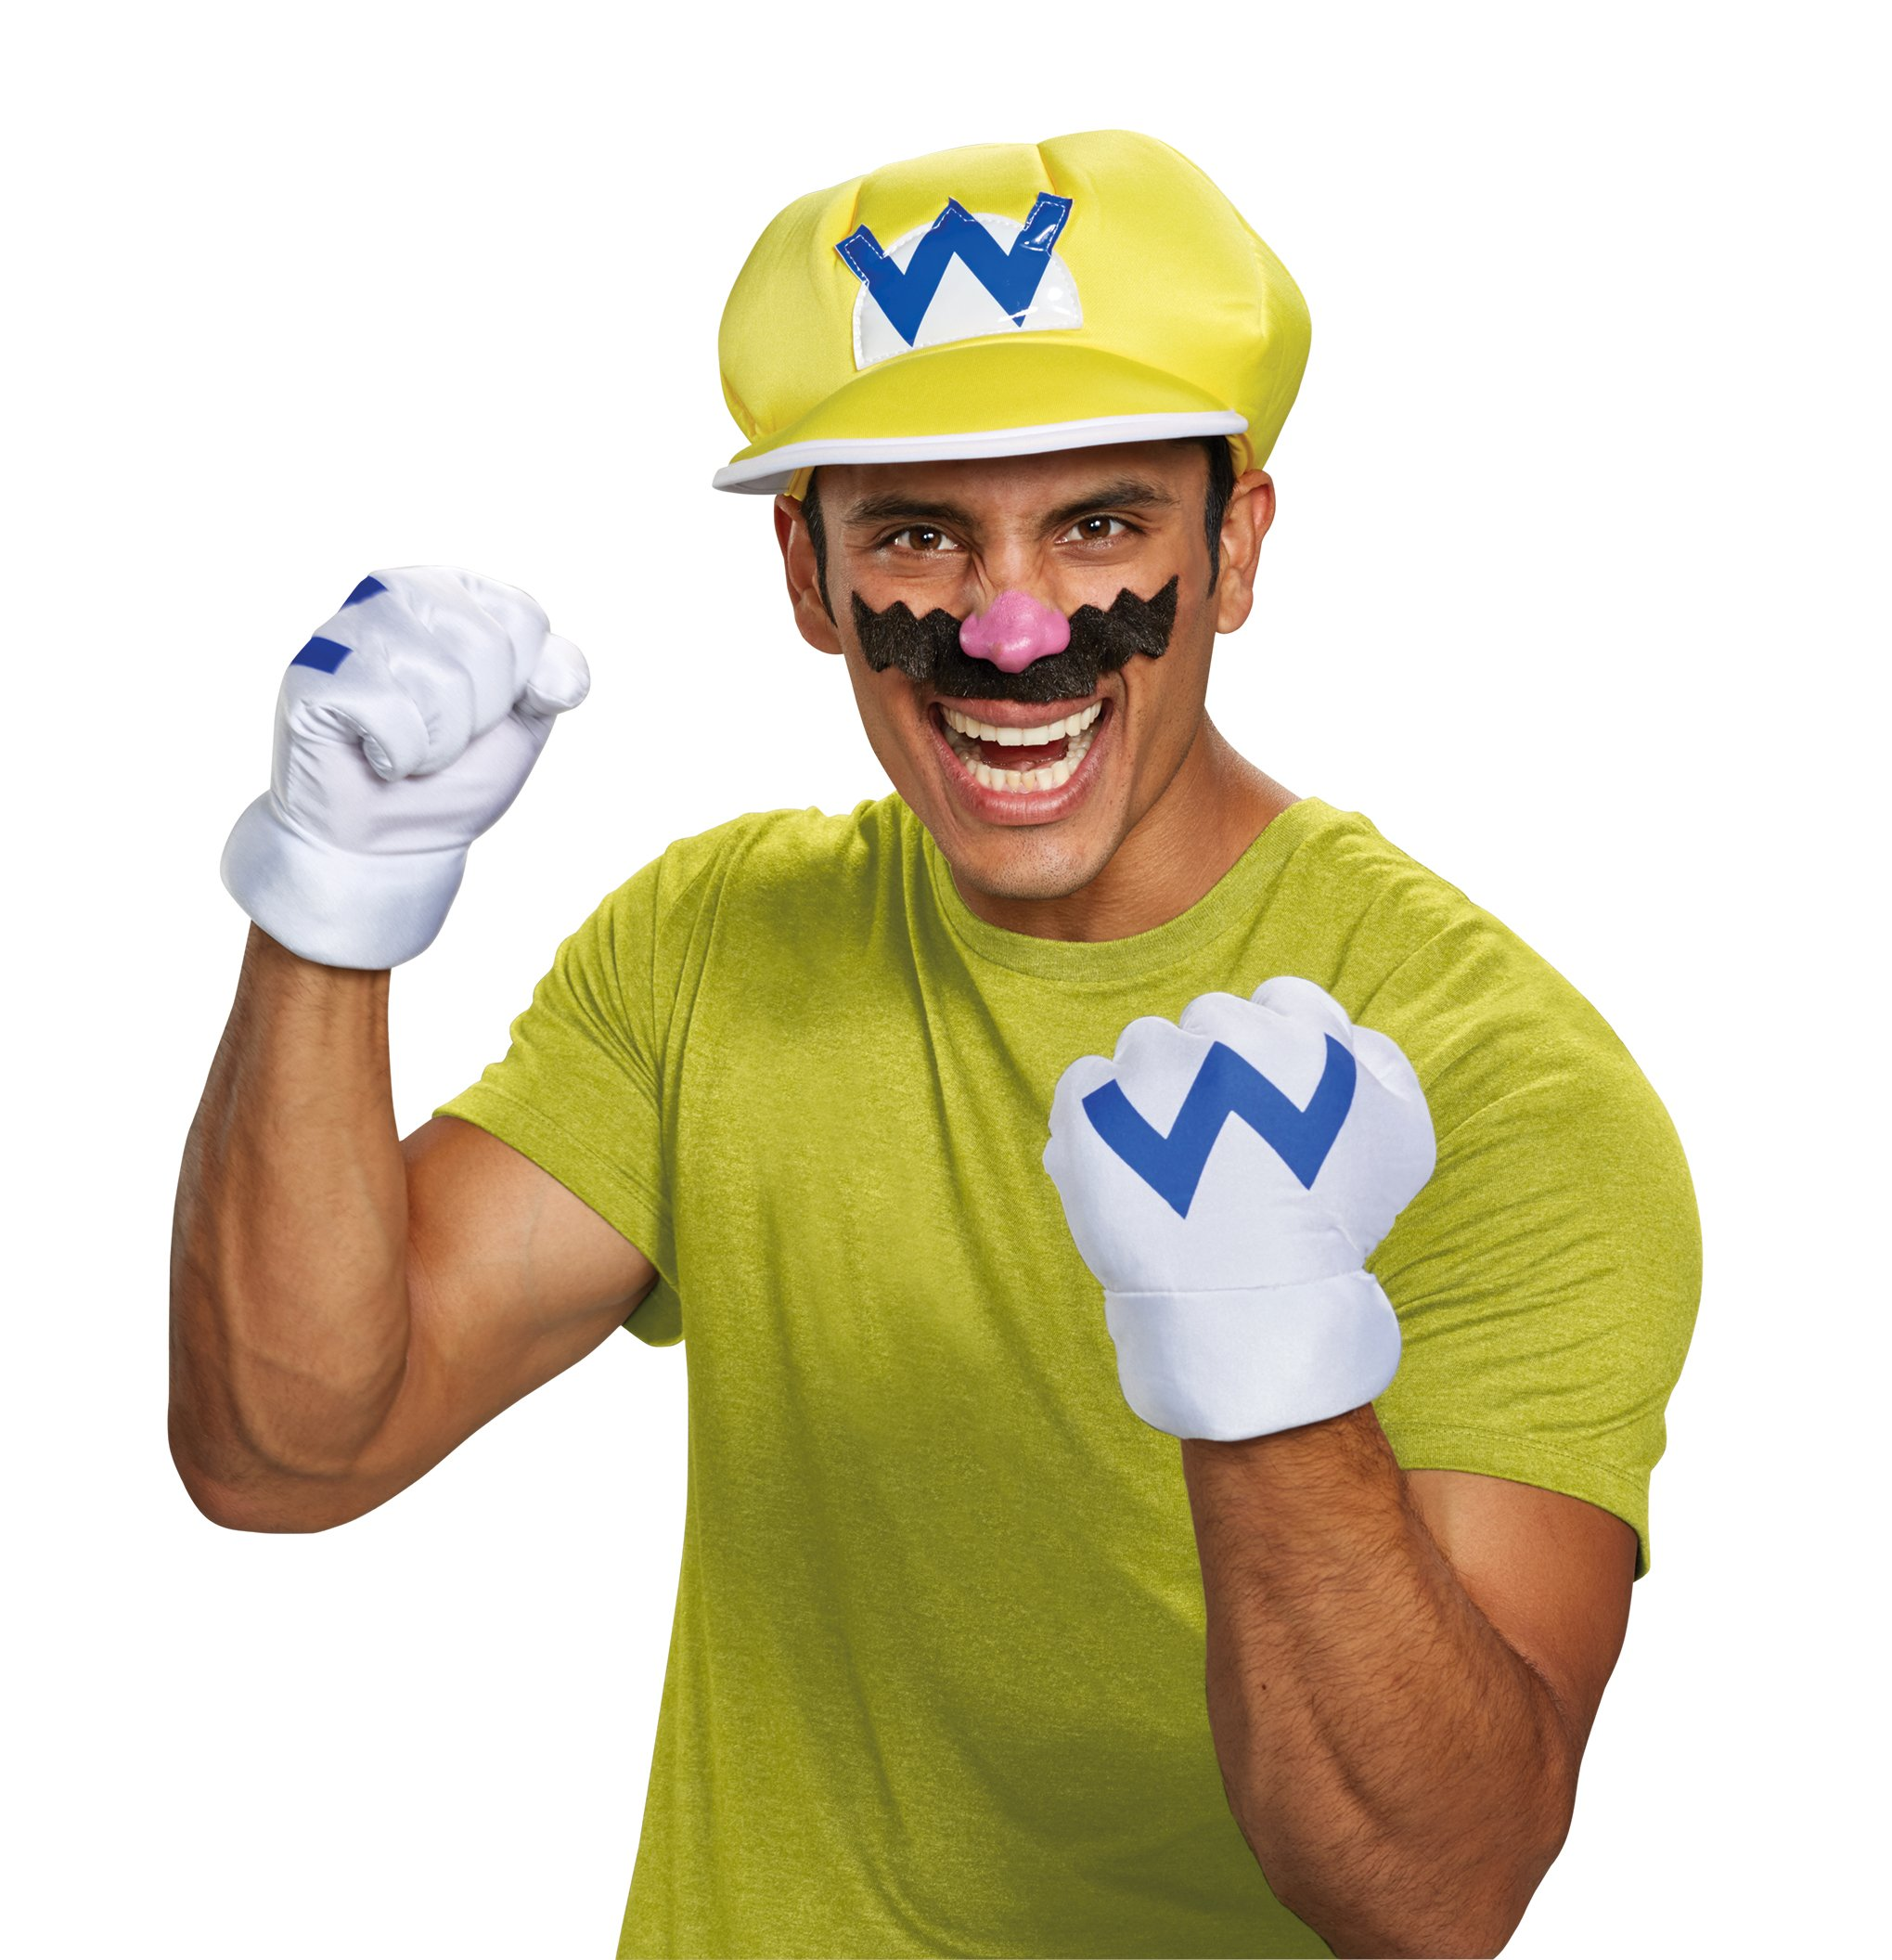 Wario Super Mario Bros. Nintendo Child Costume Kit by Disguise